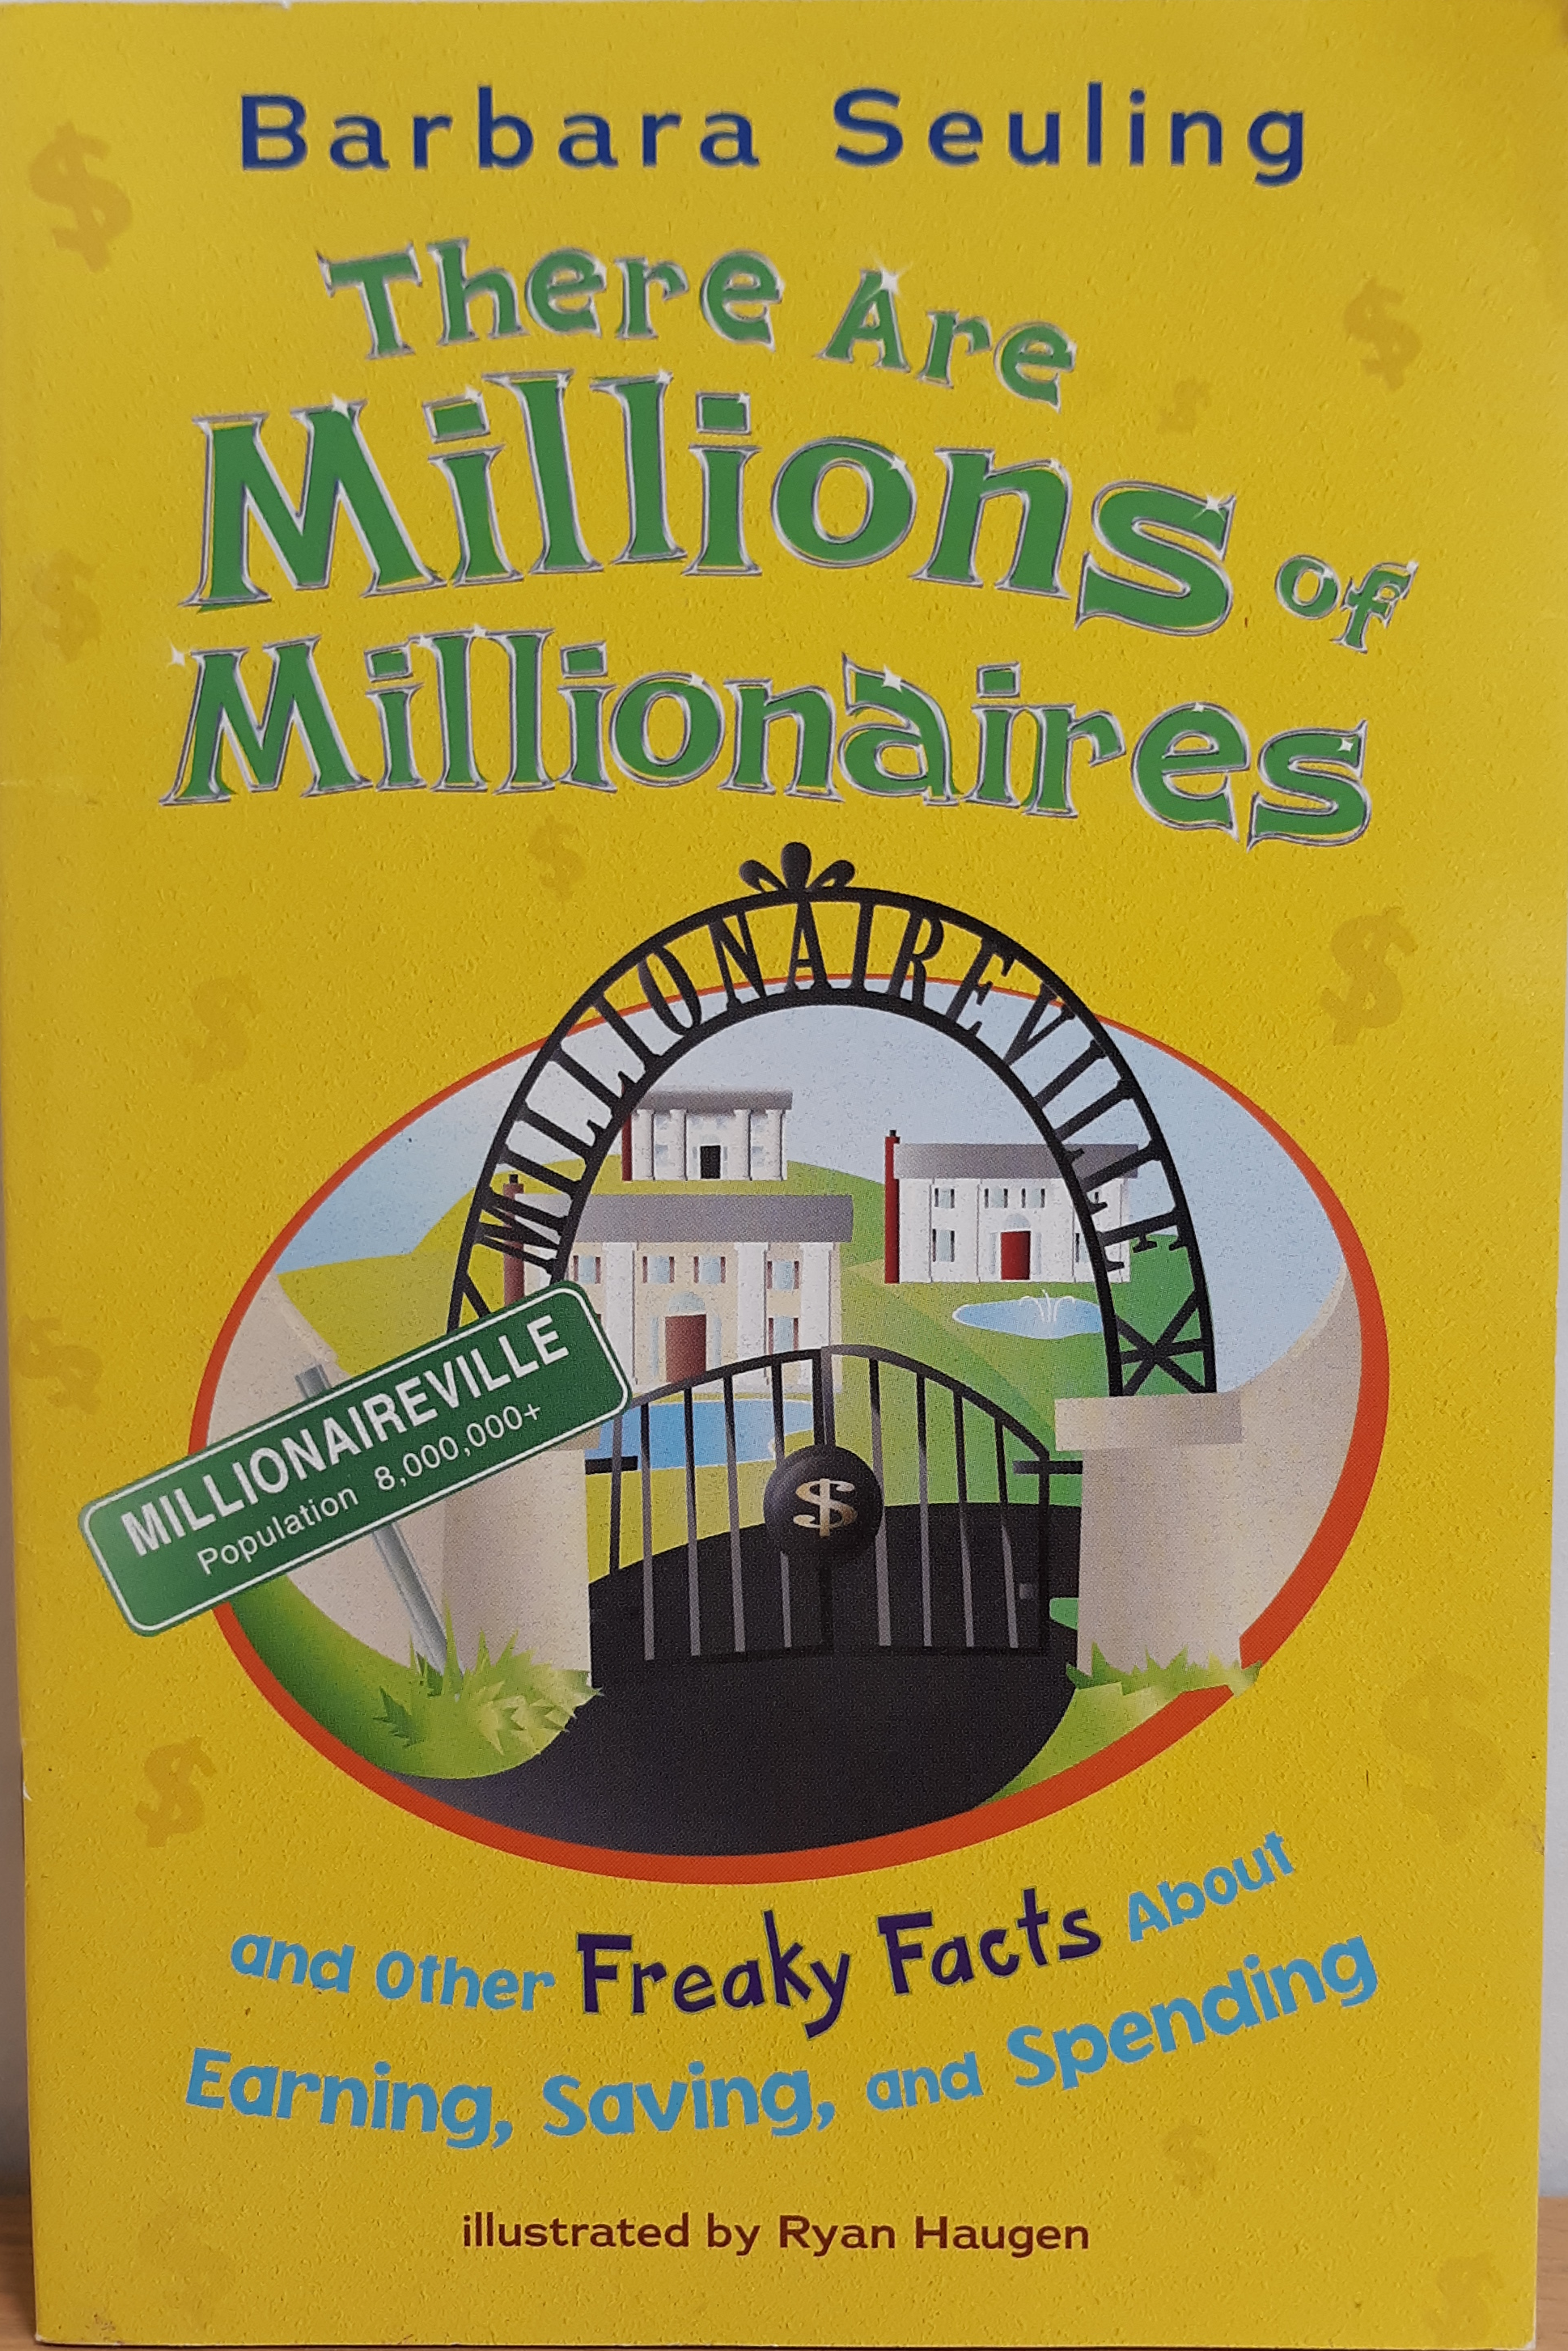 https://0201.nccdn.net/1_2/000/000/193/802/there-are-millions-of-millionaires-.png